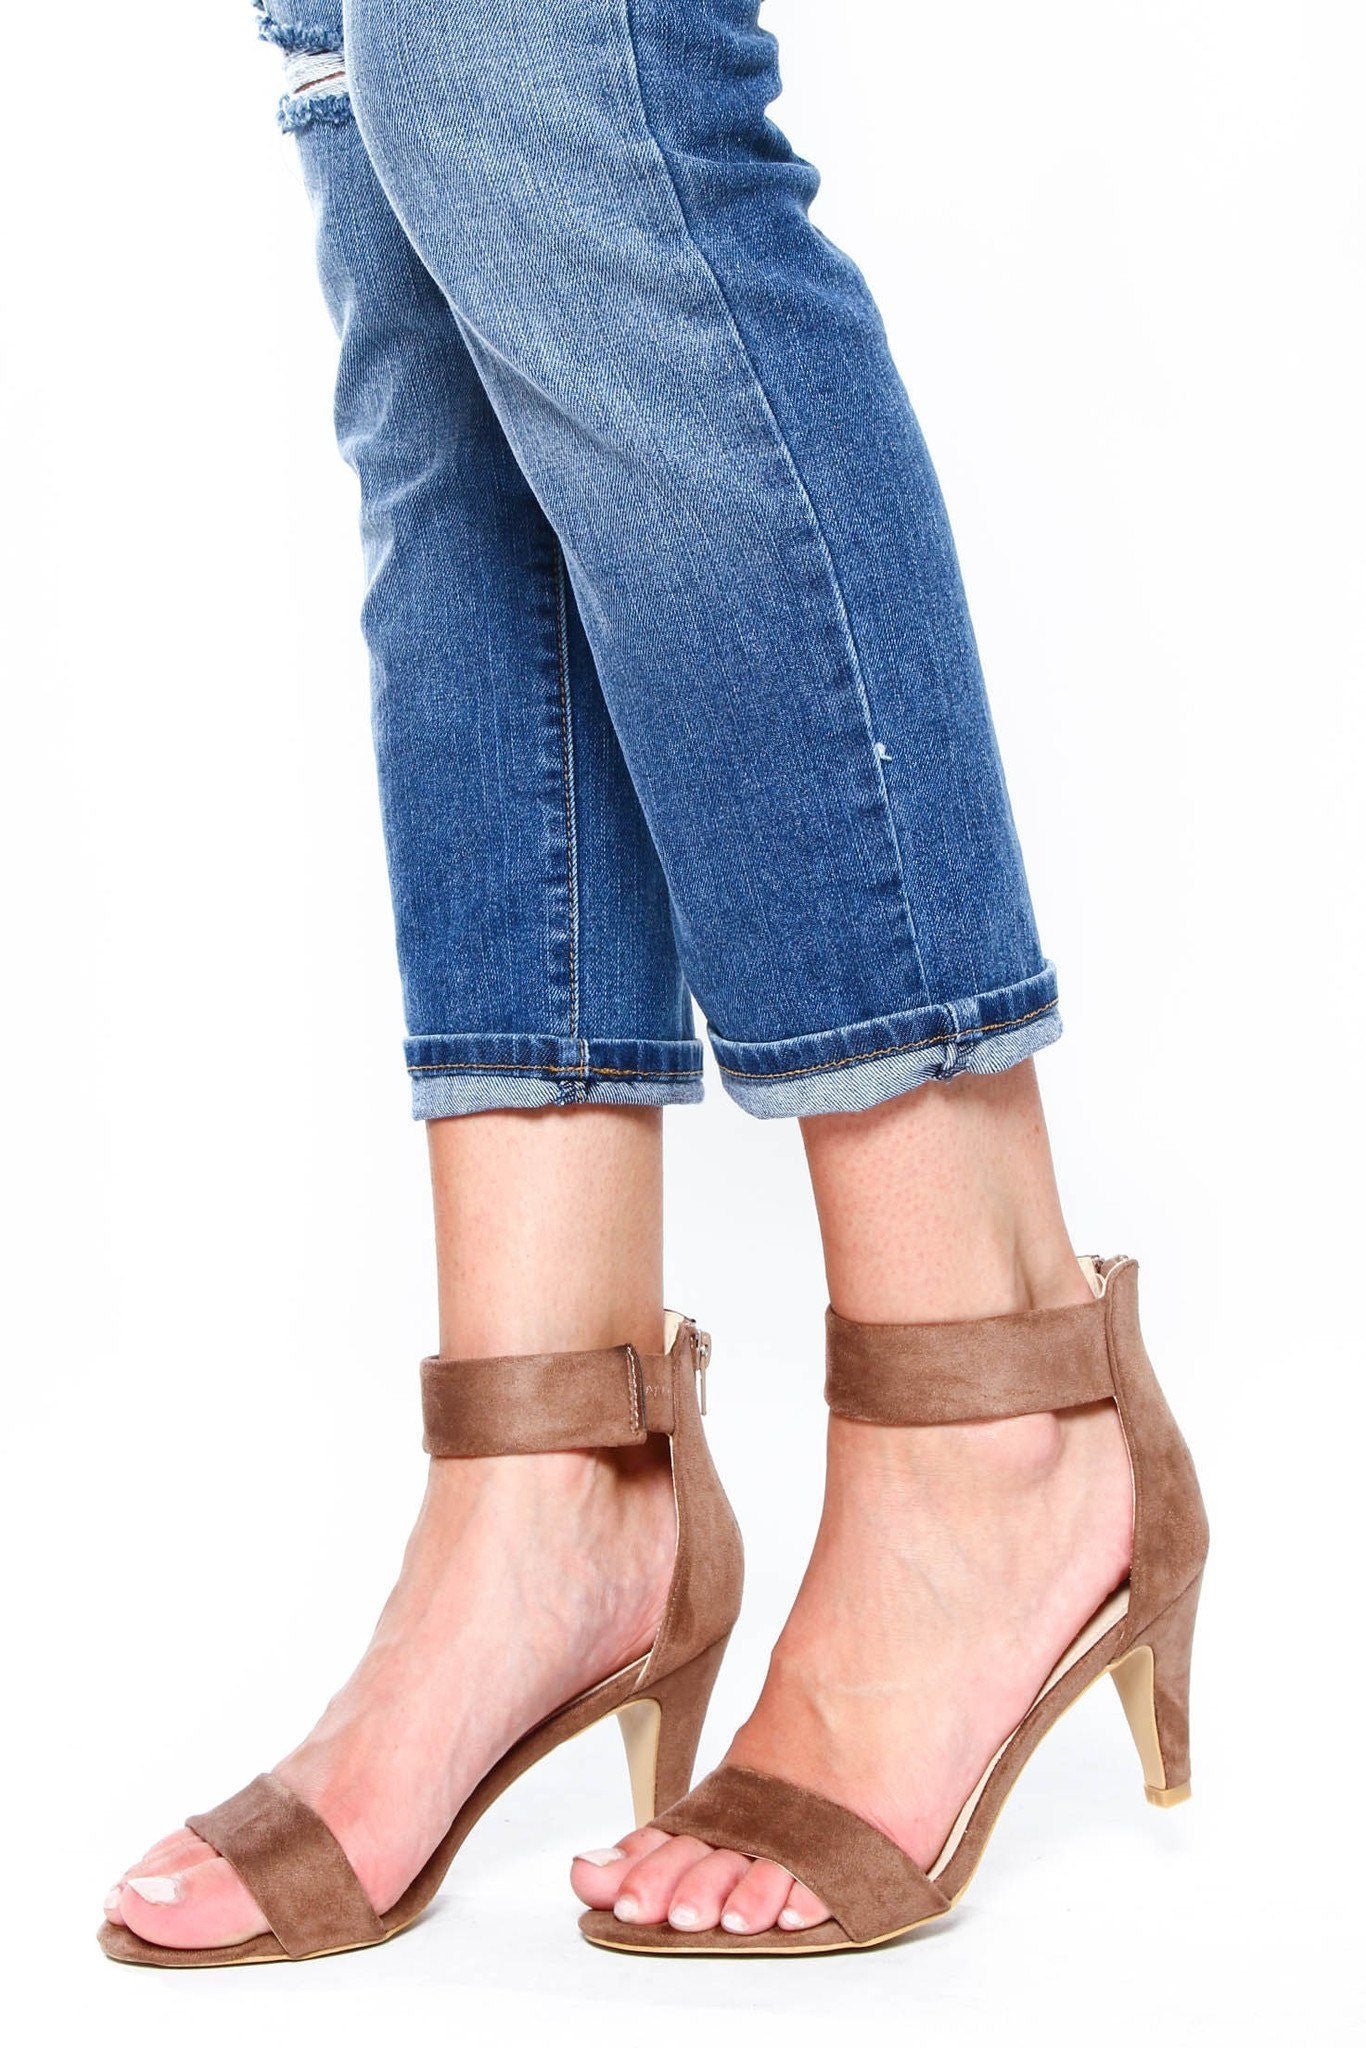 Elysa Ankle Strap Heel - Taupe